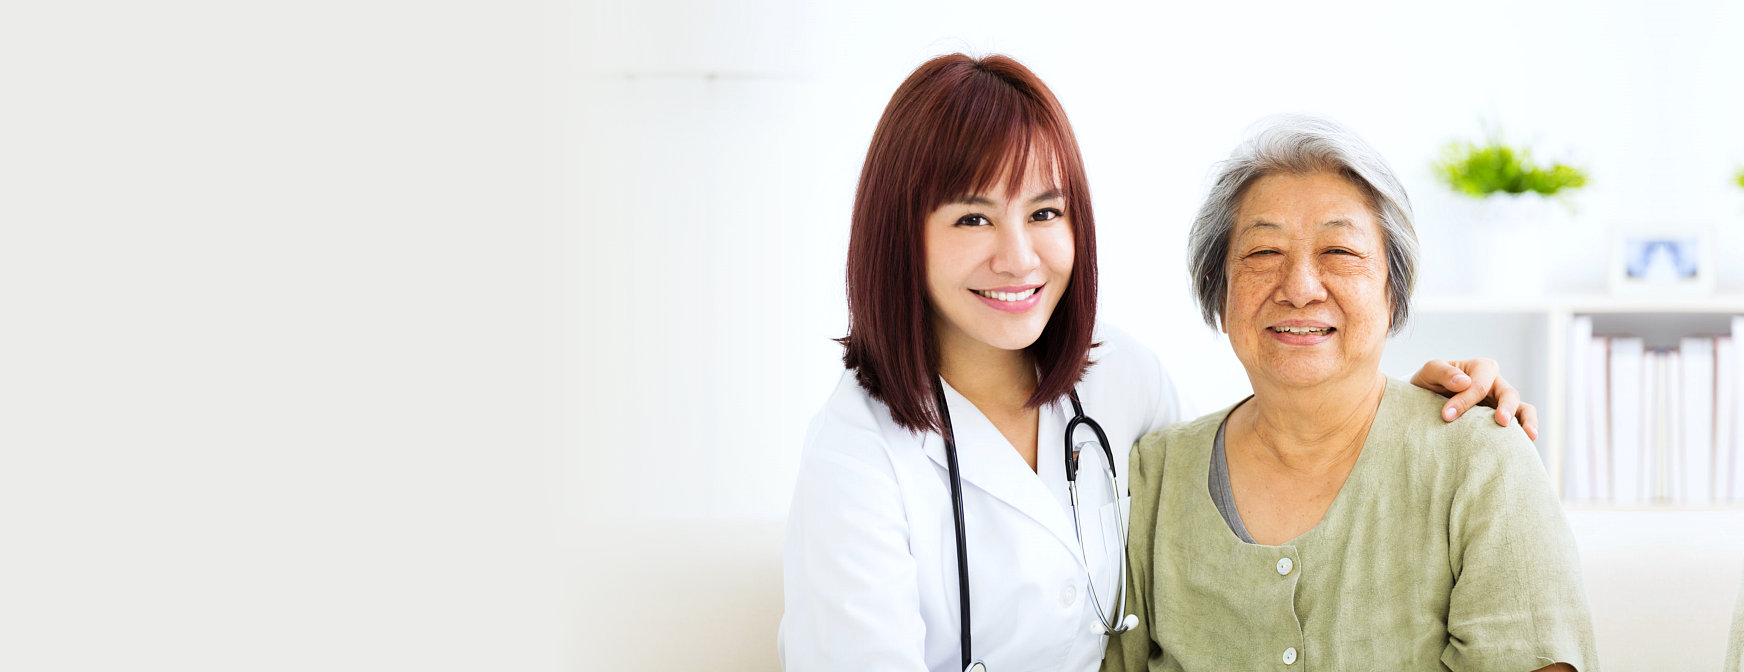 nurse and an elder woman smiling